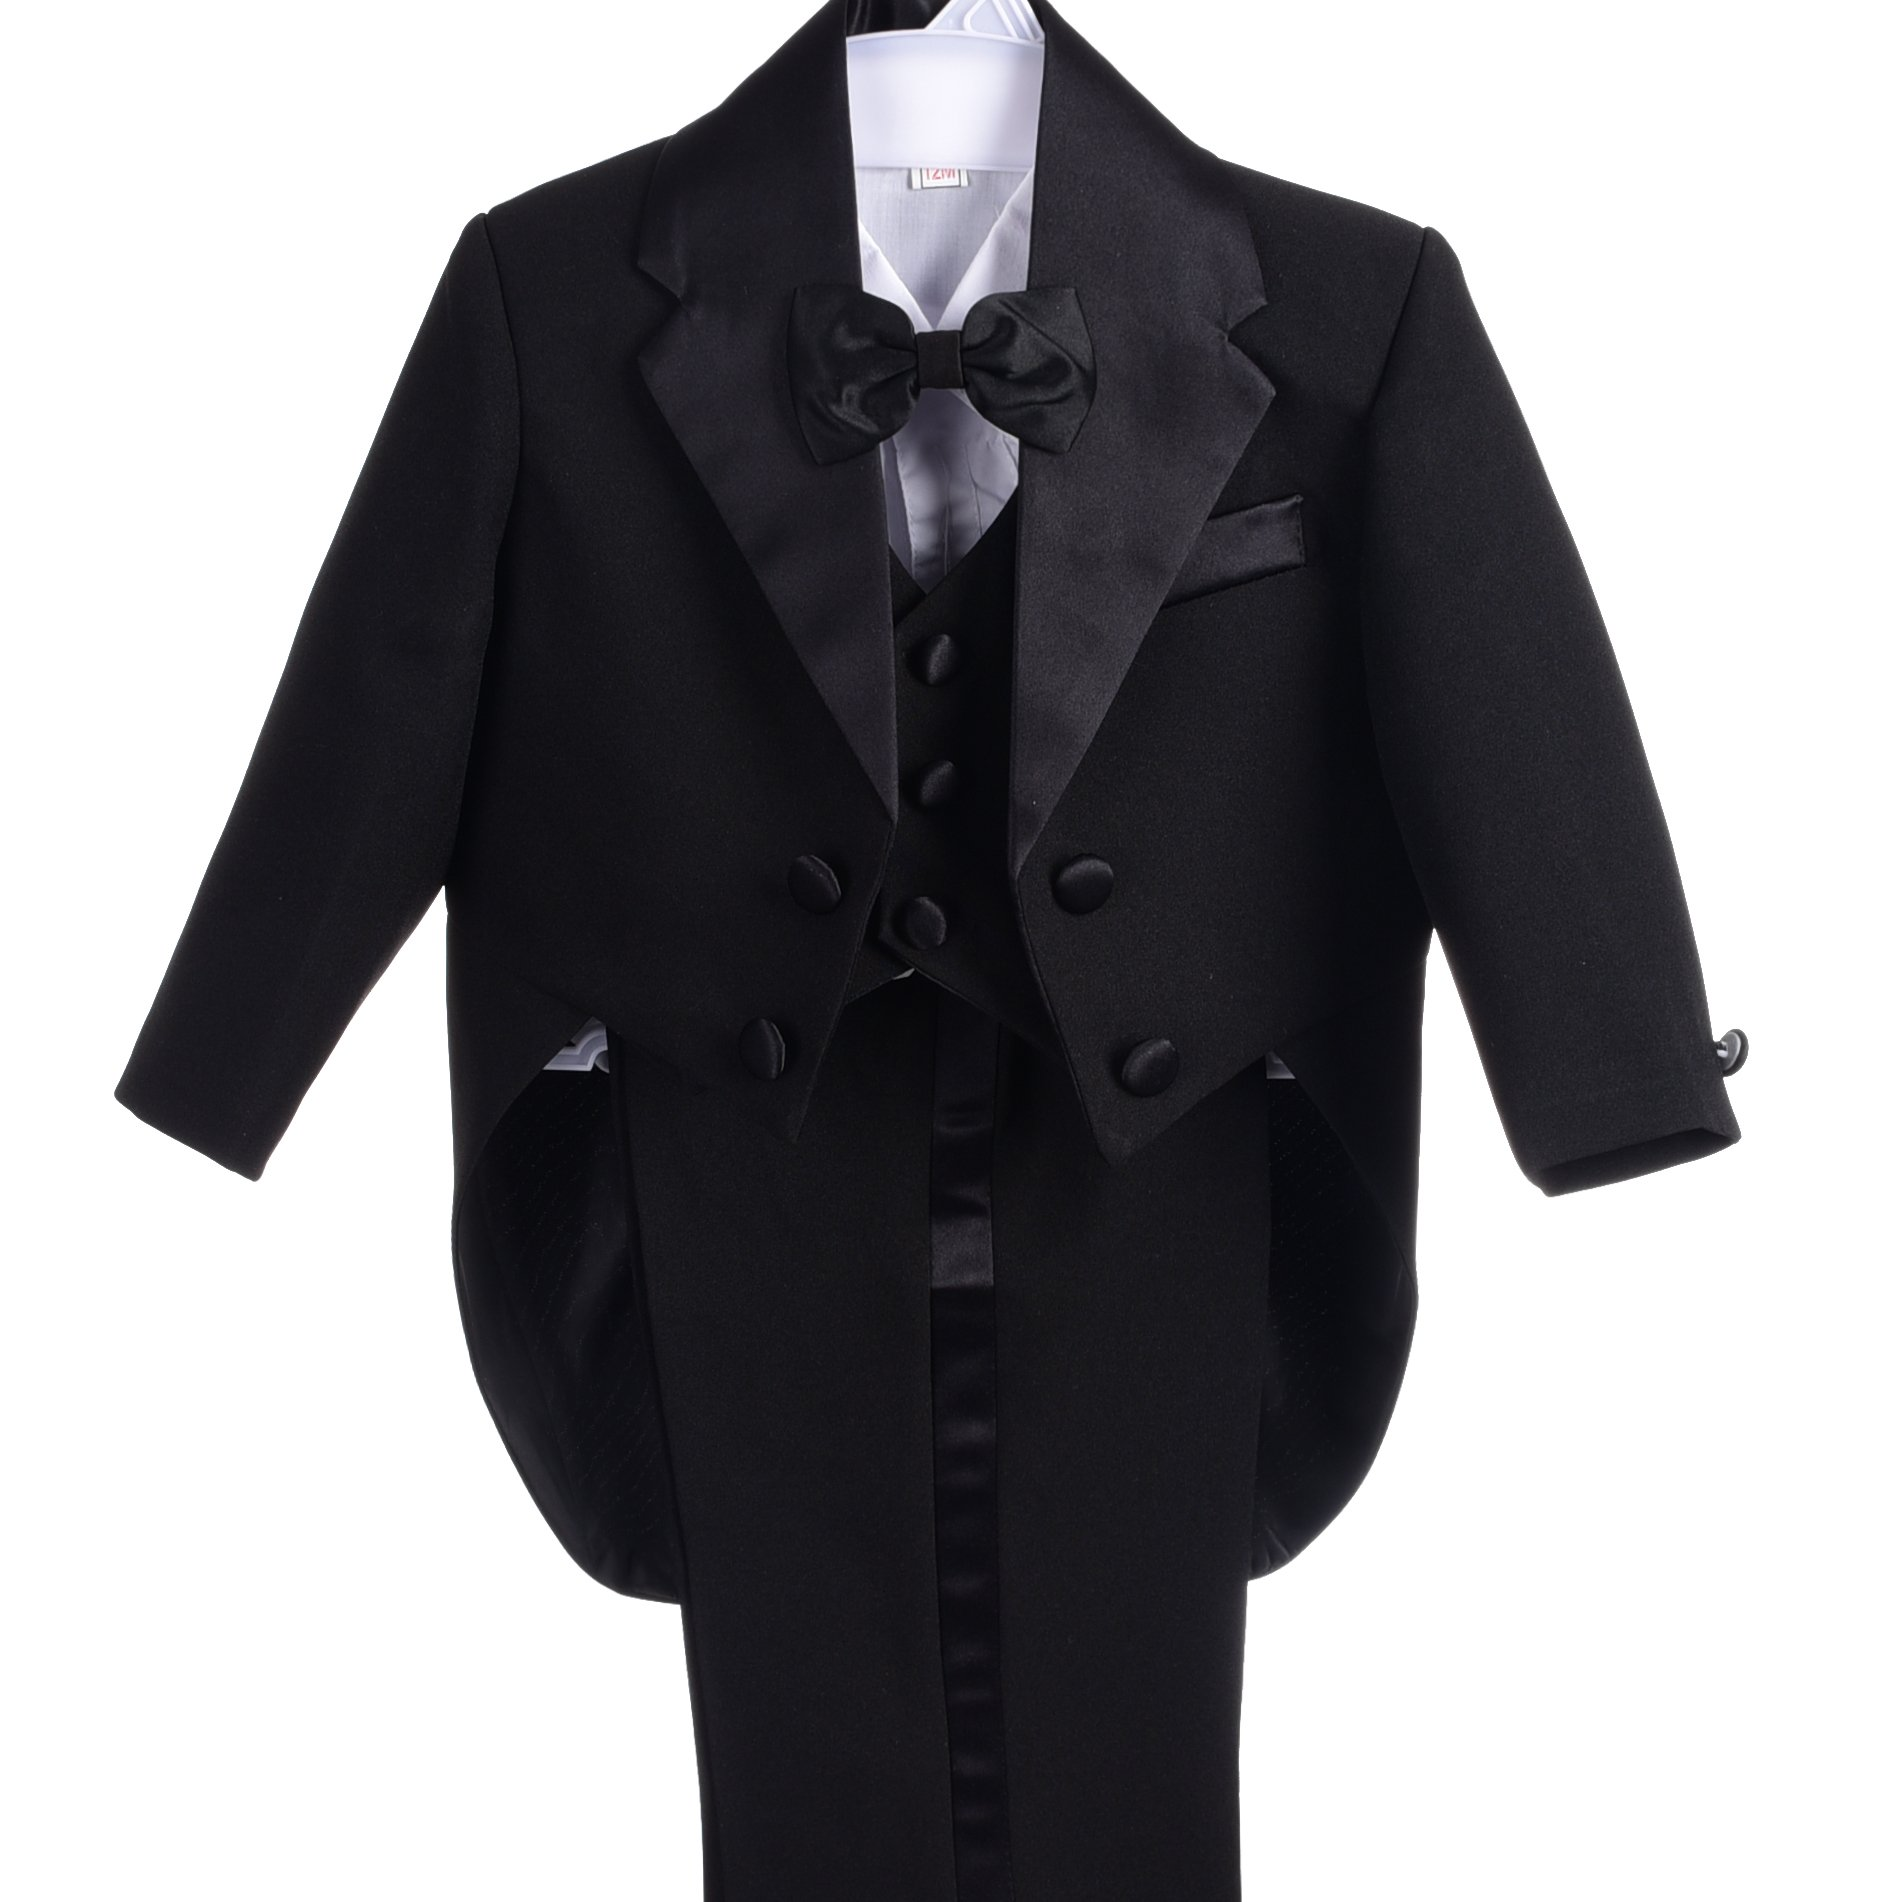 Dressy Daisy Baby-Boys' Classic Tuxedo With Tail 5pc Set Wedding Outfits Size 6 Months Black